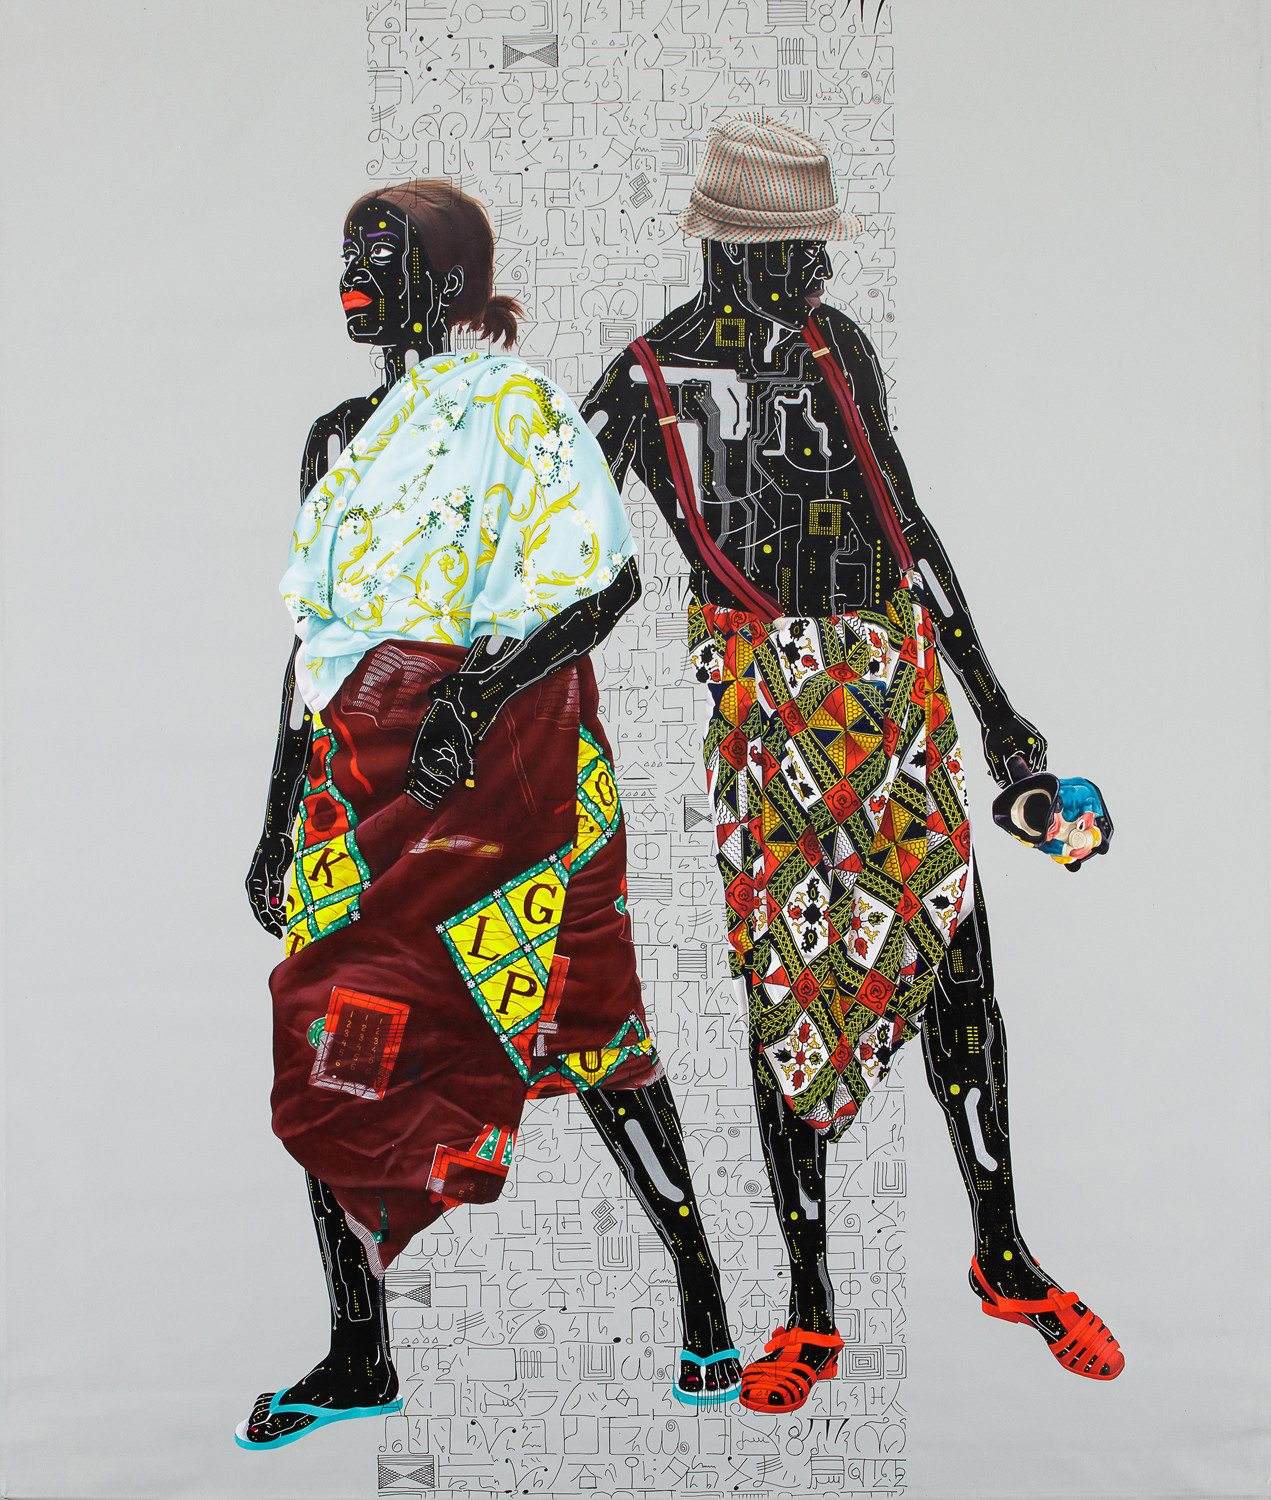 Eddy Kamuanga (born 1991, Democratic Republic of the Congo) 2018 Oil on canvas Signed and dated on the top part of the canvas 204 x 184 cmExceptional performance for Modern and Contemporary Art from Africa at auction in Paris